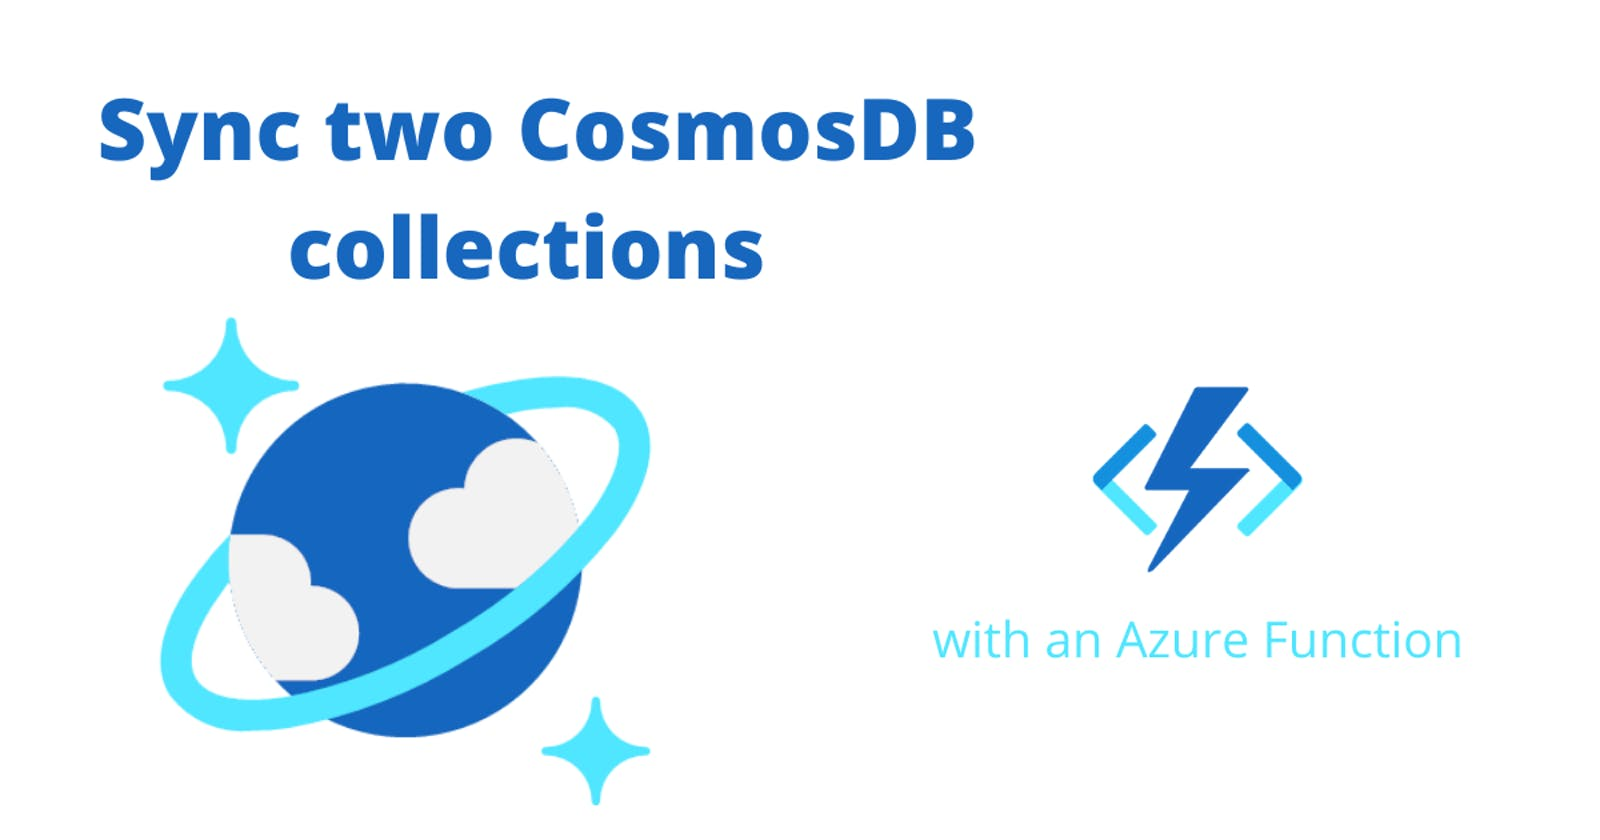 Sync two CosmosDB collections with an Azure Function